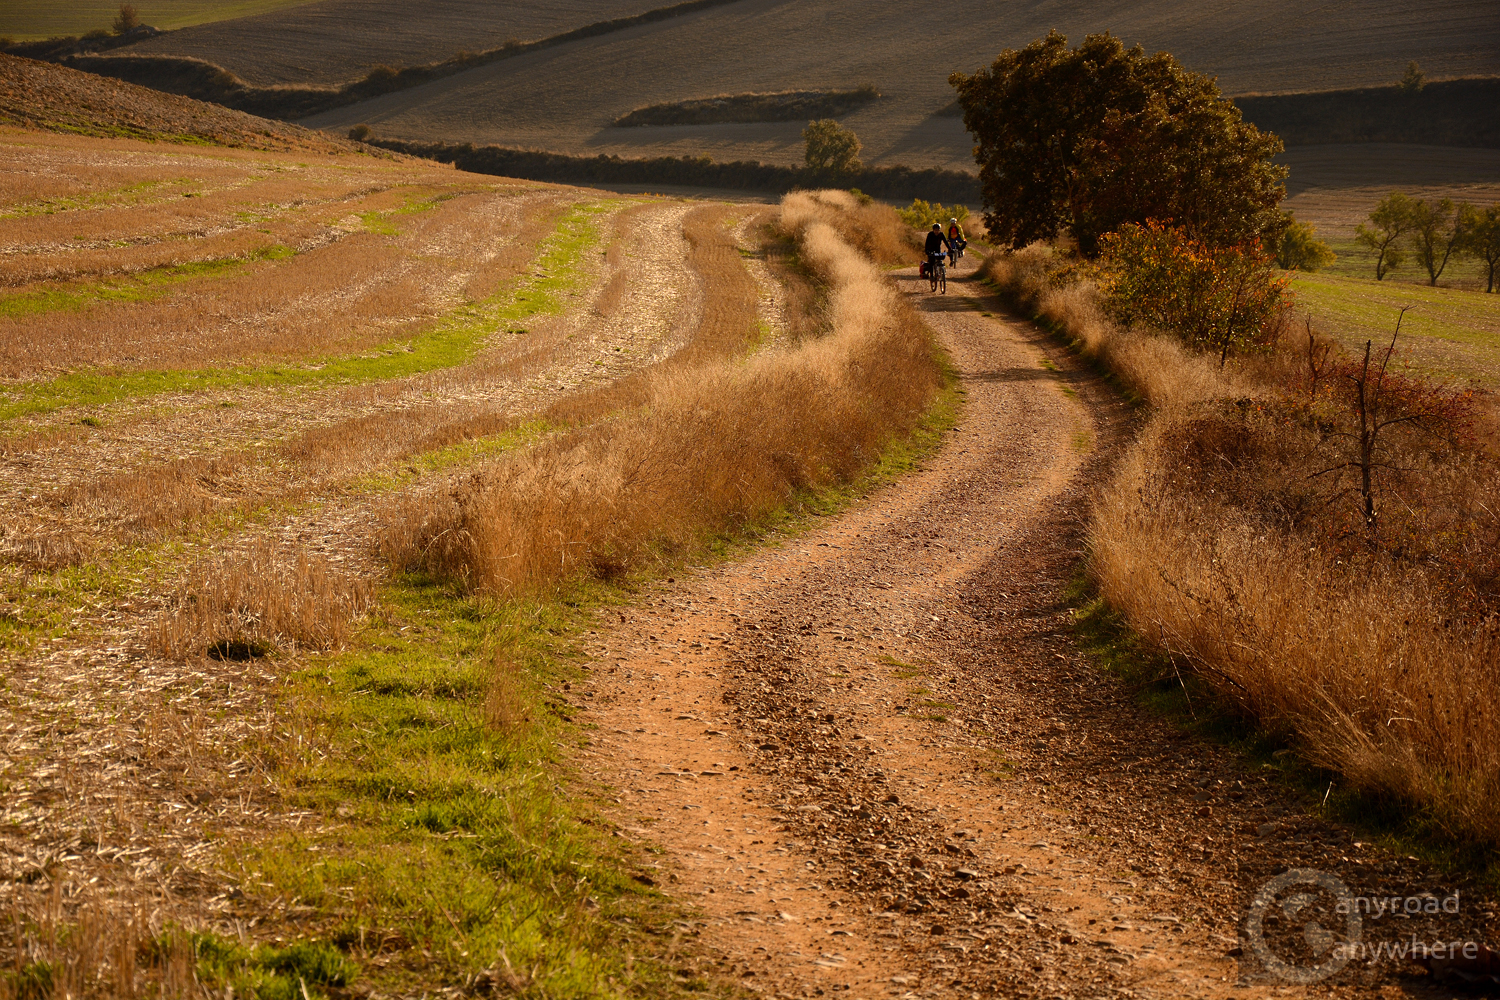 Some pilgrims ride bicycles - it can be challenging on some dirt roads